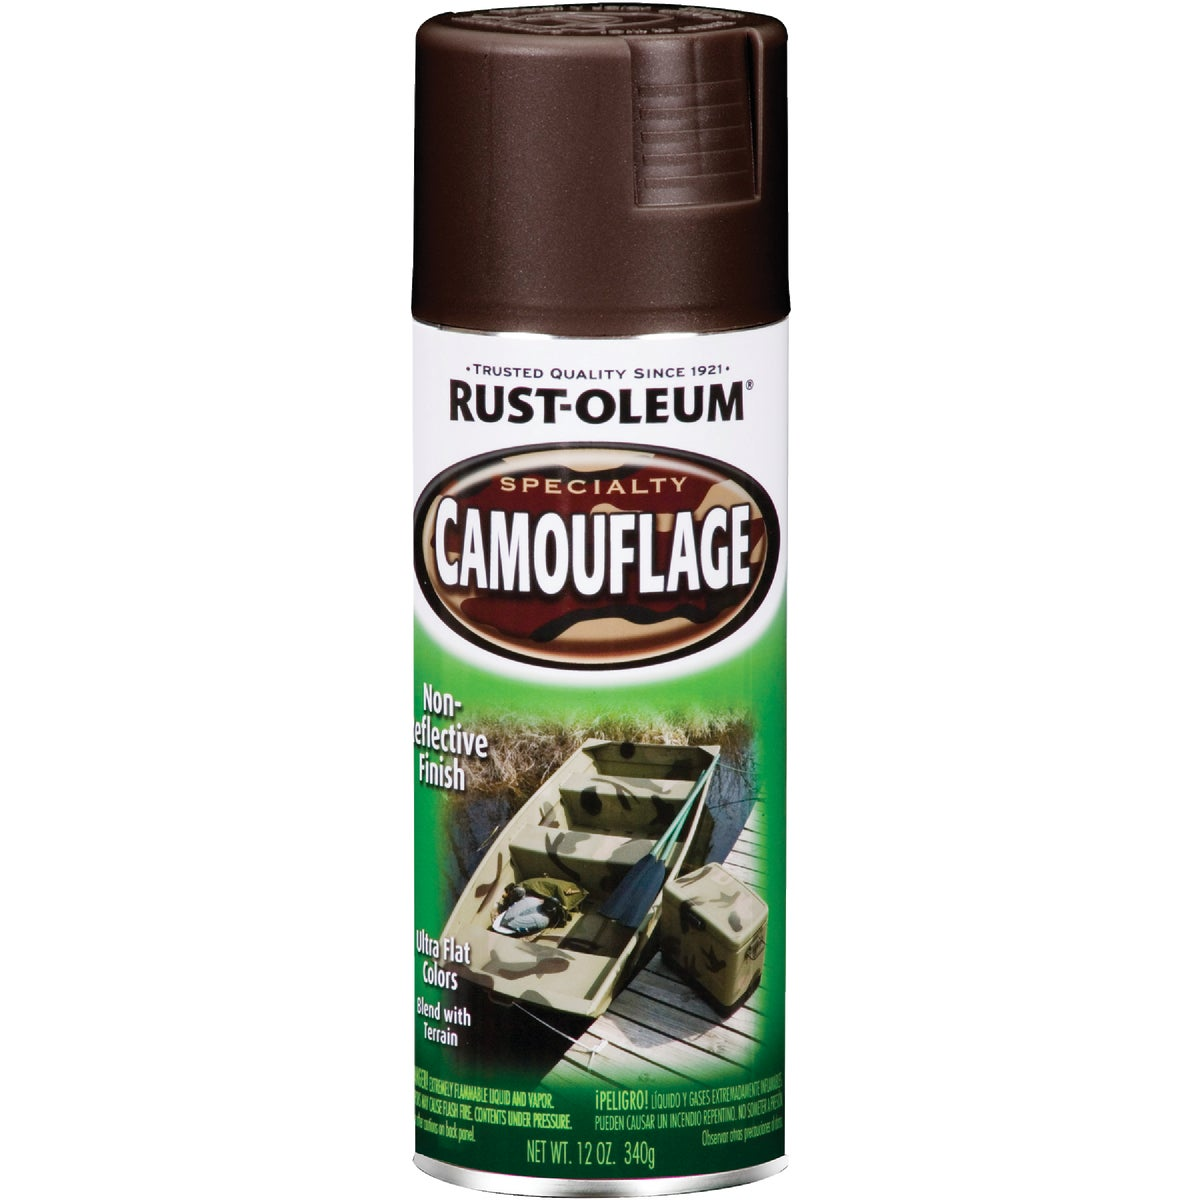 E BROWN CAMO SPRAY PAINT - 1918-830 by Rustoleum